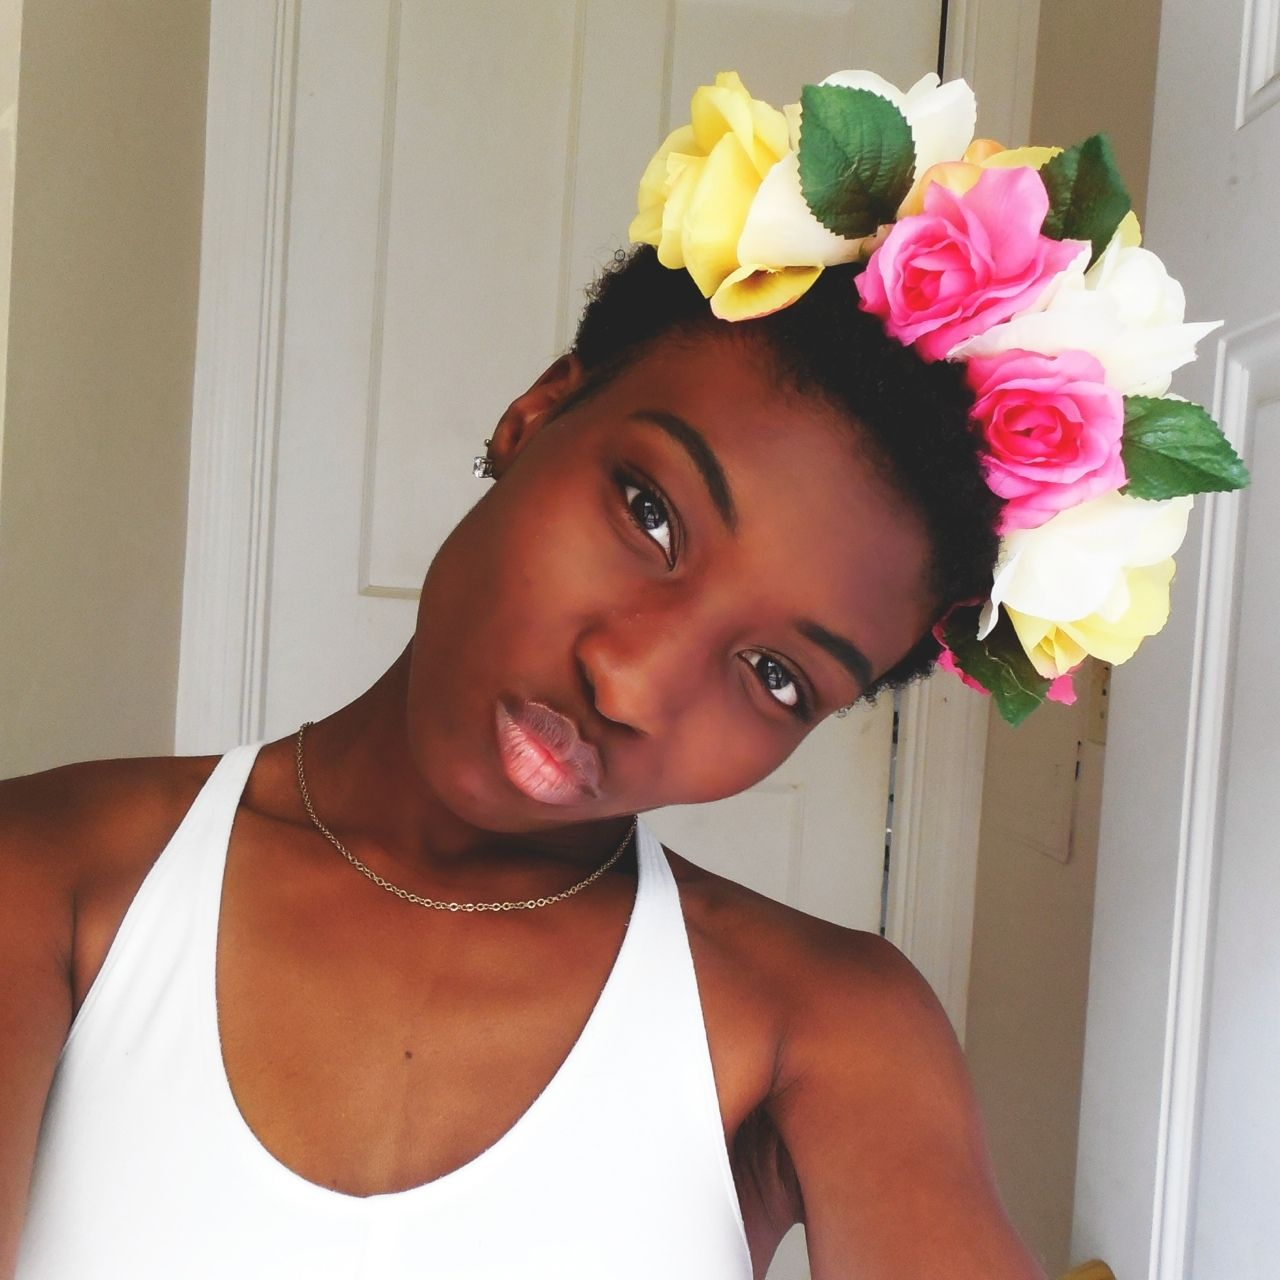 Woman black afro natural hair flower crown beautiful woman of color woman black afro natural hair flower crown beautiful woman of color izmirmasajfo